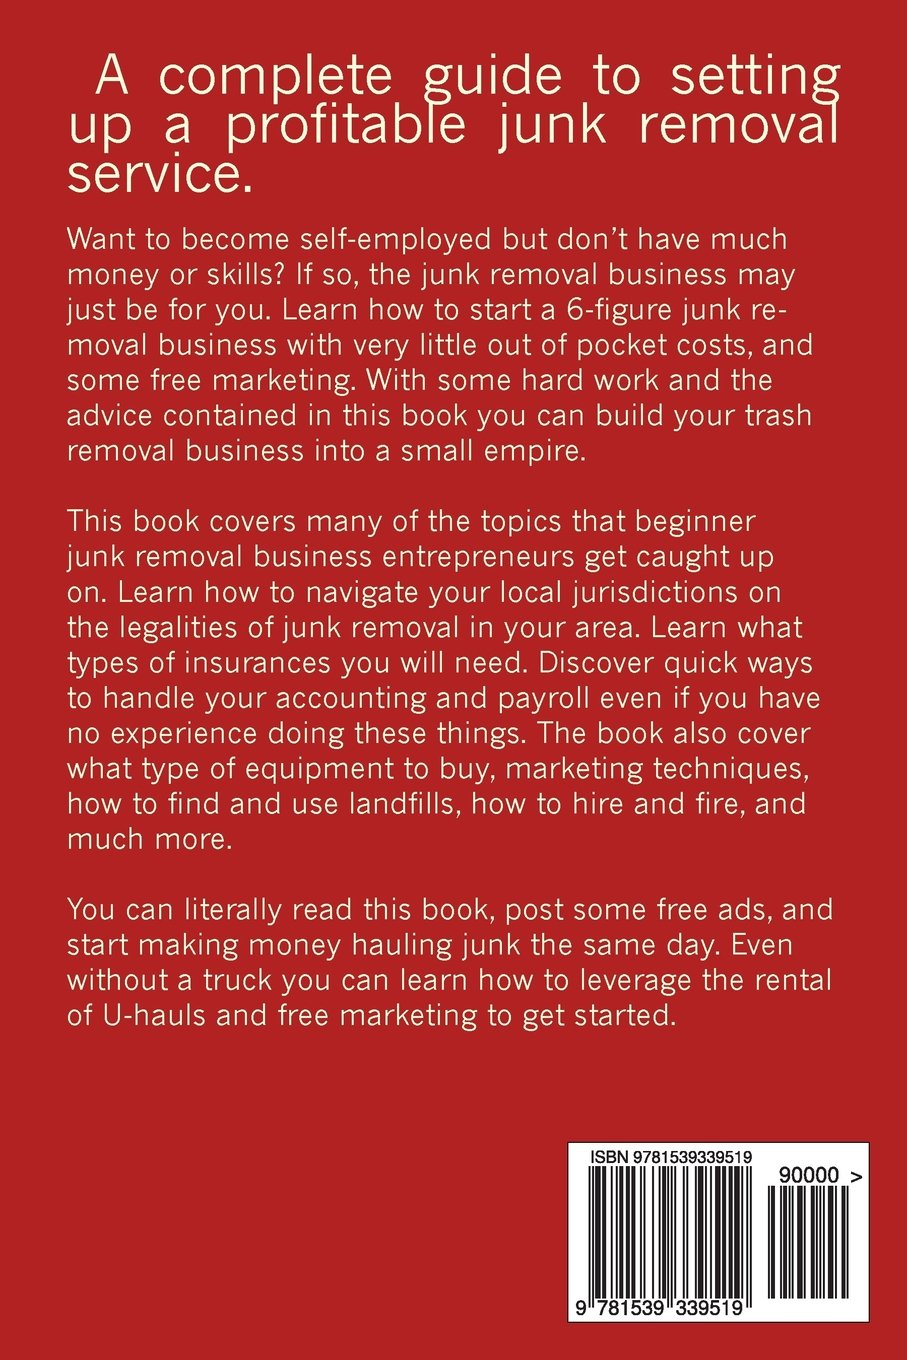 Start a 6 figure junk removal business a complete guide to start a 6 figure junk removal business a complete guide to setting up a profitable junk removal service michael mettlach 9781539339519 amazon books magicingreecefo Choice Image